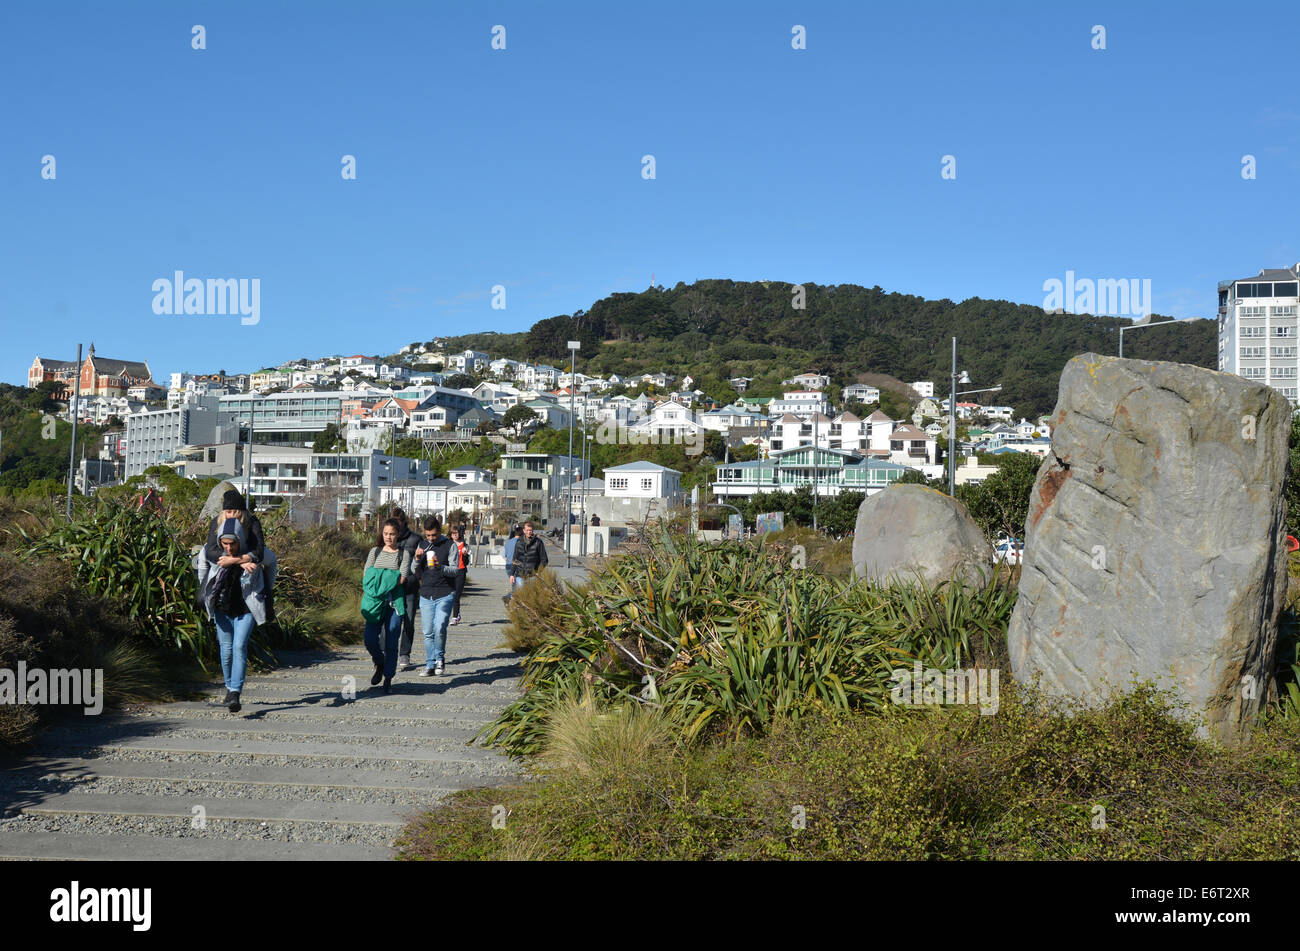 WELLINGTON - AUG 22 2014:Visitors at Waitangi skate park.Wellington is New Zealand's centre of government and - Stock Image